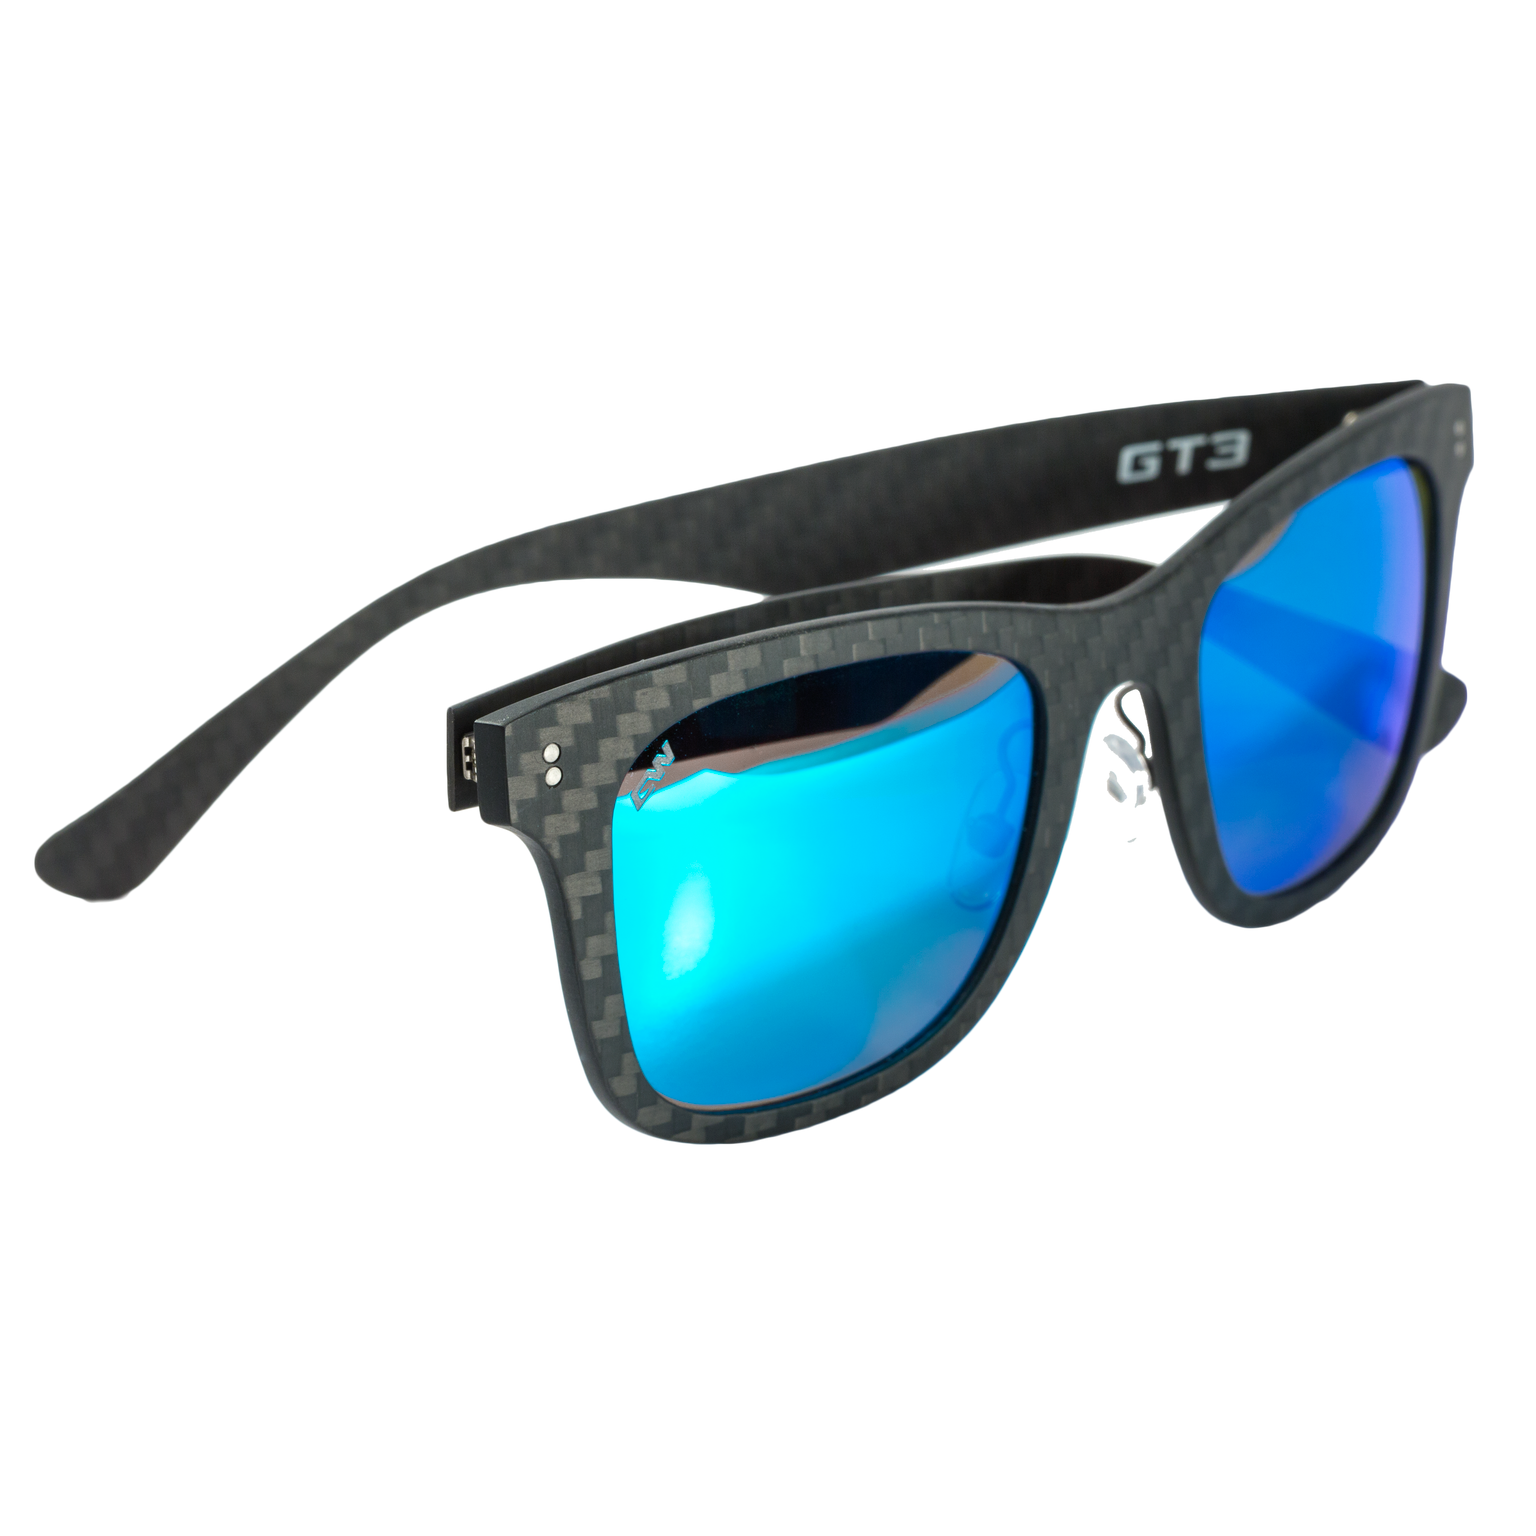 0b4041bfec CarbonWurks Custom Carbon FibreGT2 sunglasses Sea Blue Mirror ...